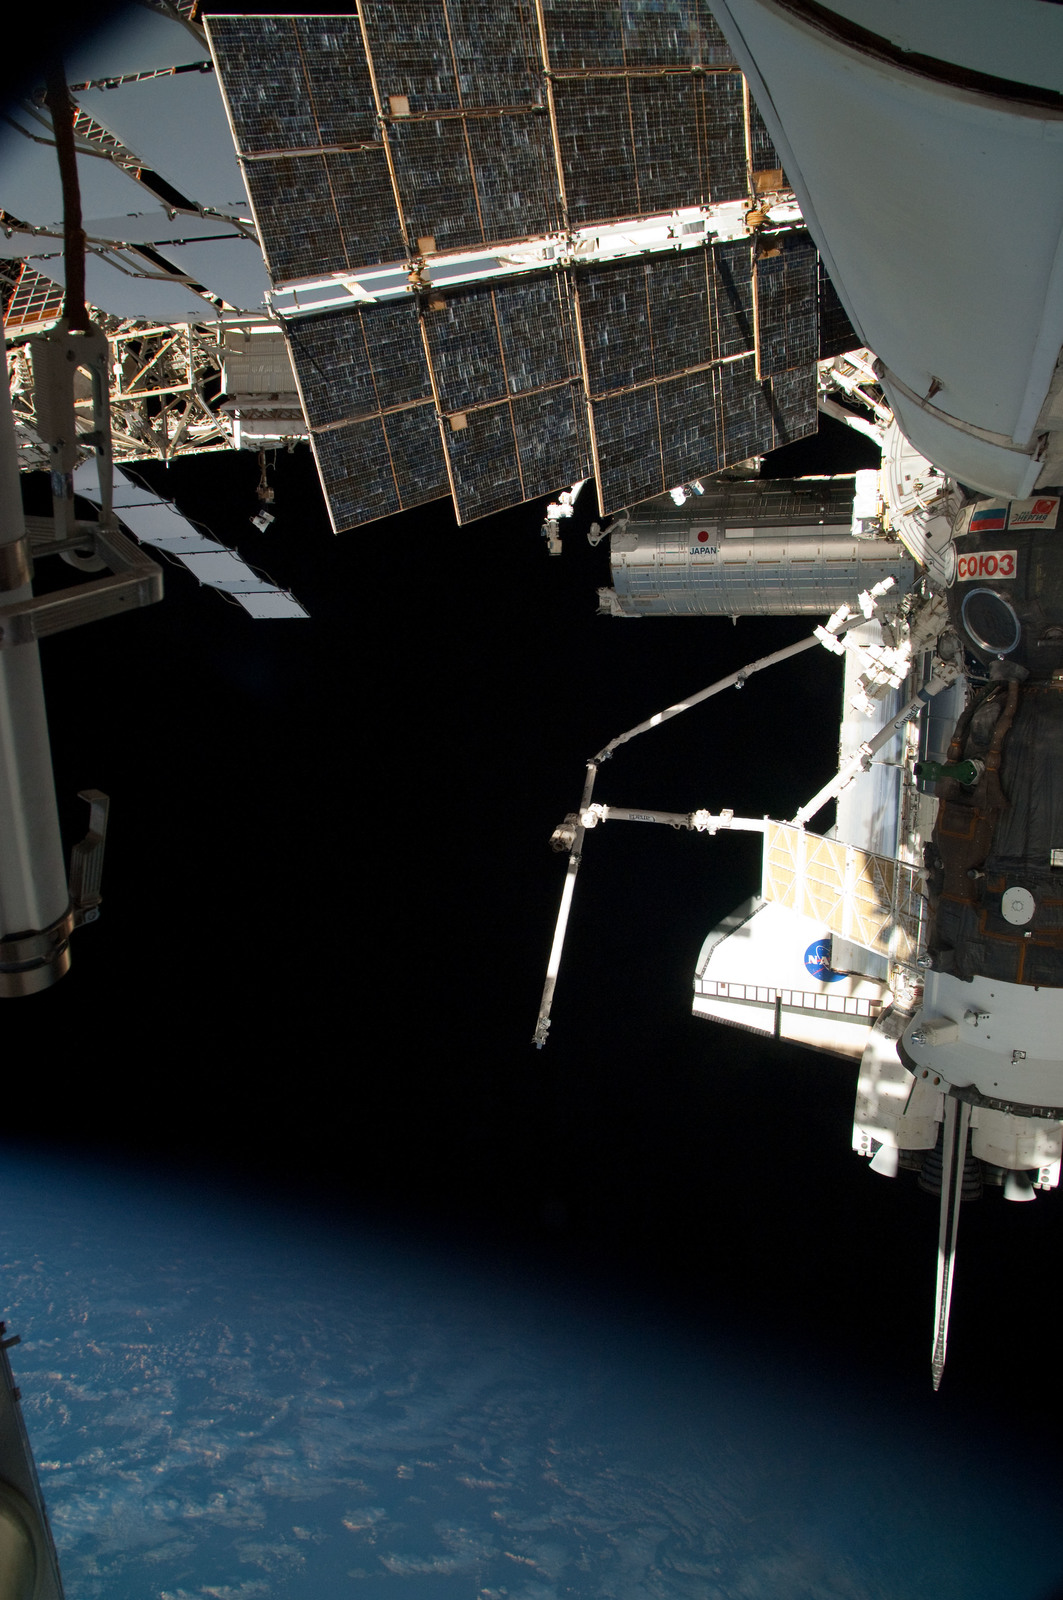 S126E025047 - STS-126 - View of ISS, Docked Soyuz and Endeavour